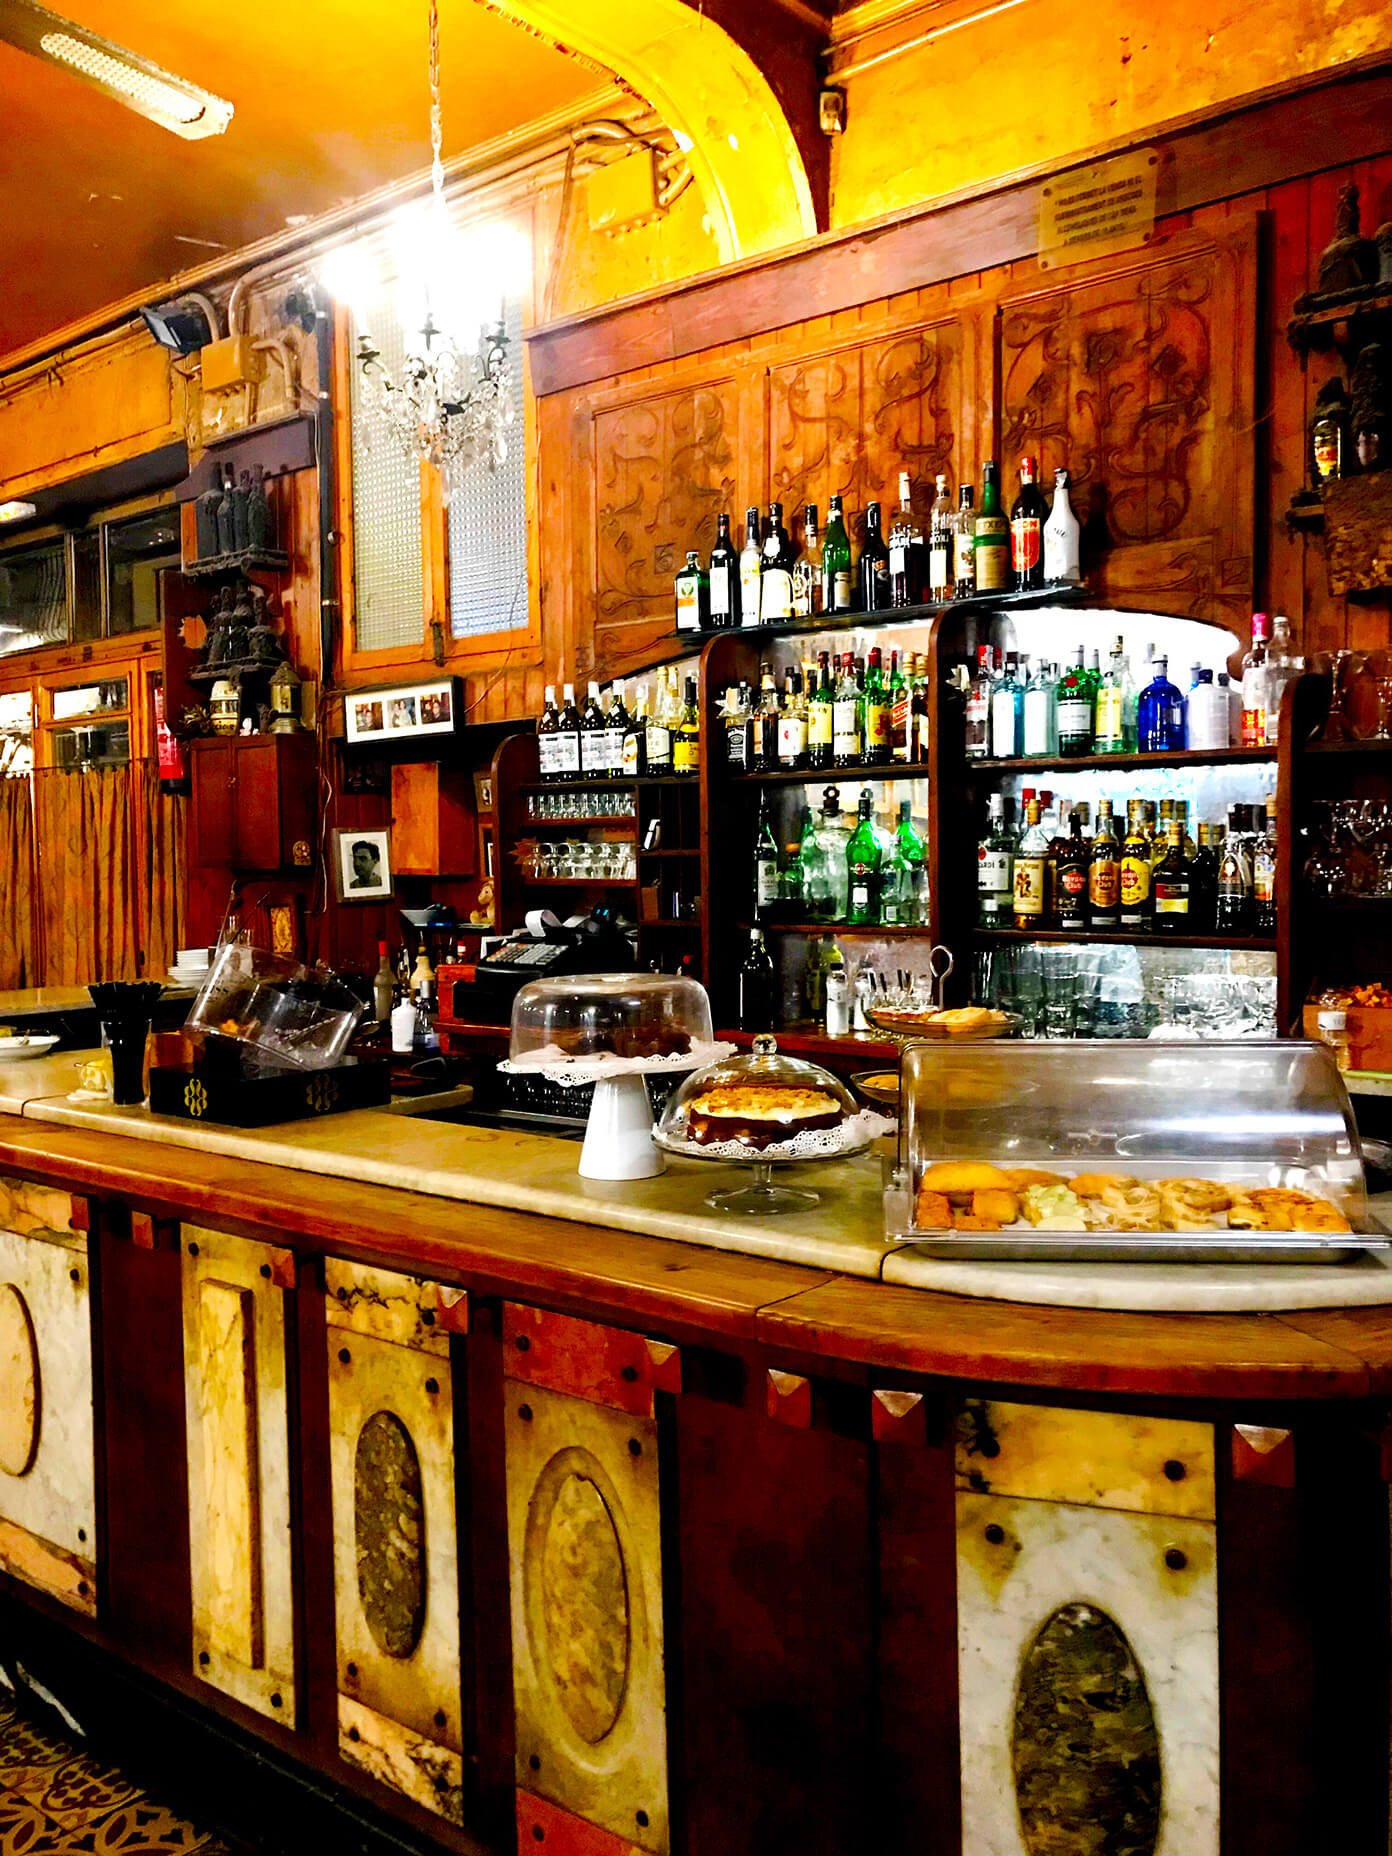 Bar Marsella - Hemingway bar famous for absinthe | Gimme Some Barcelona Travel Guide